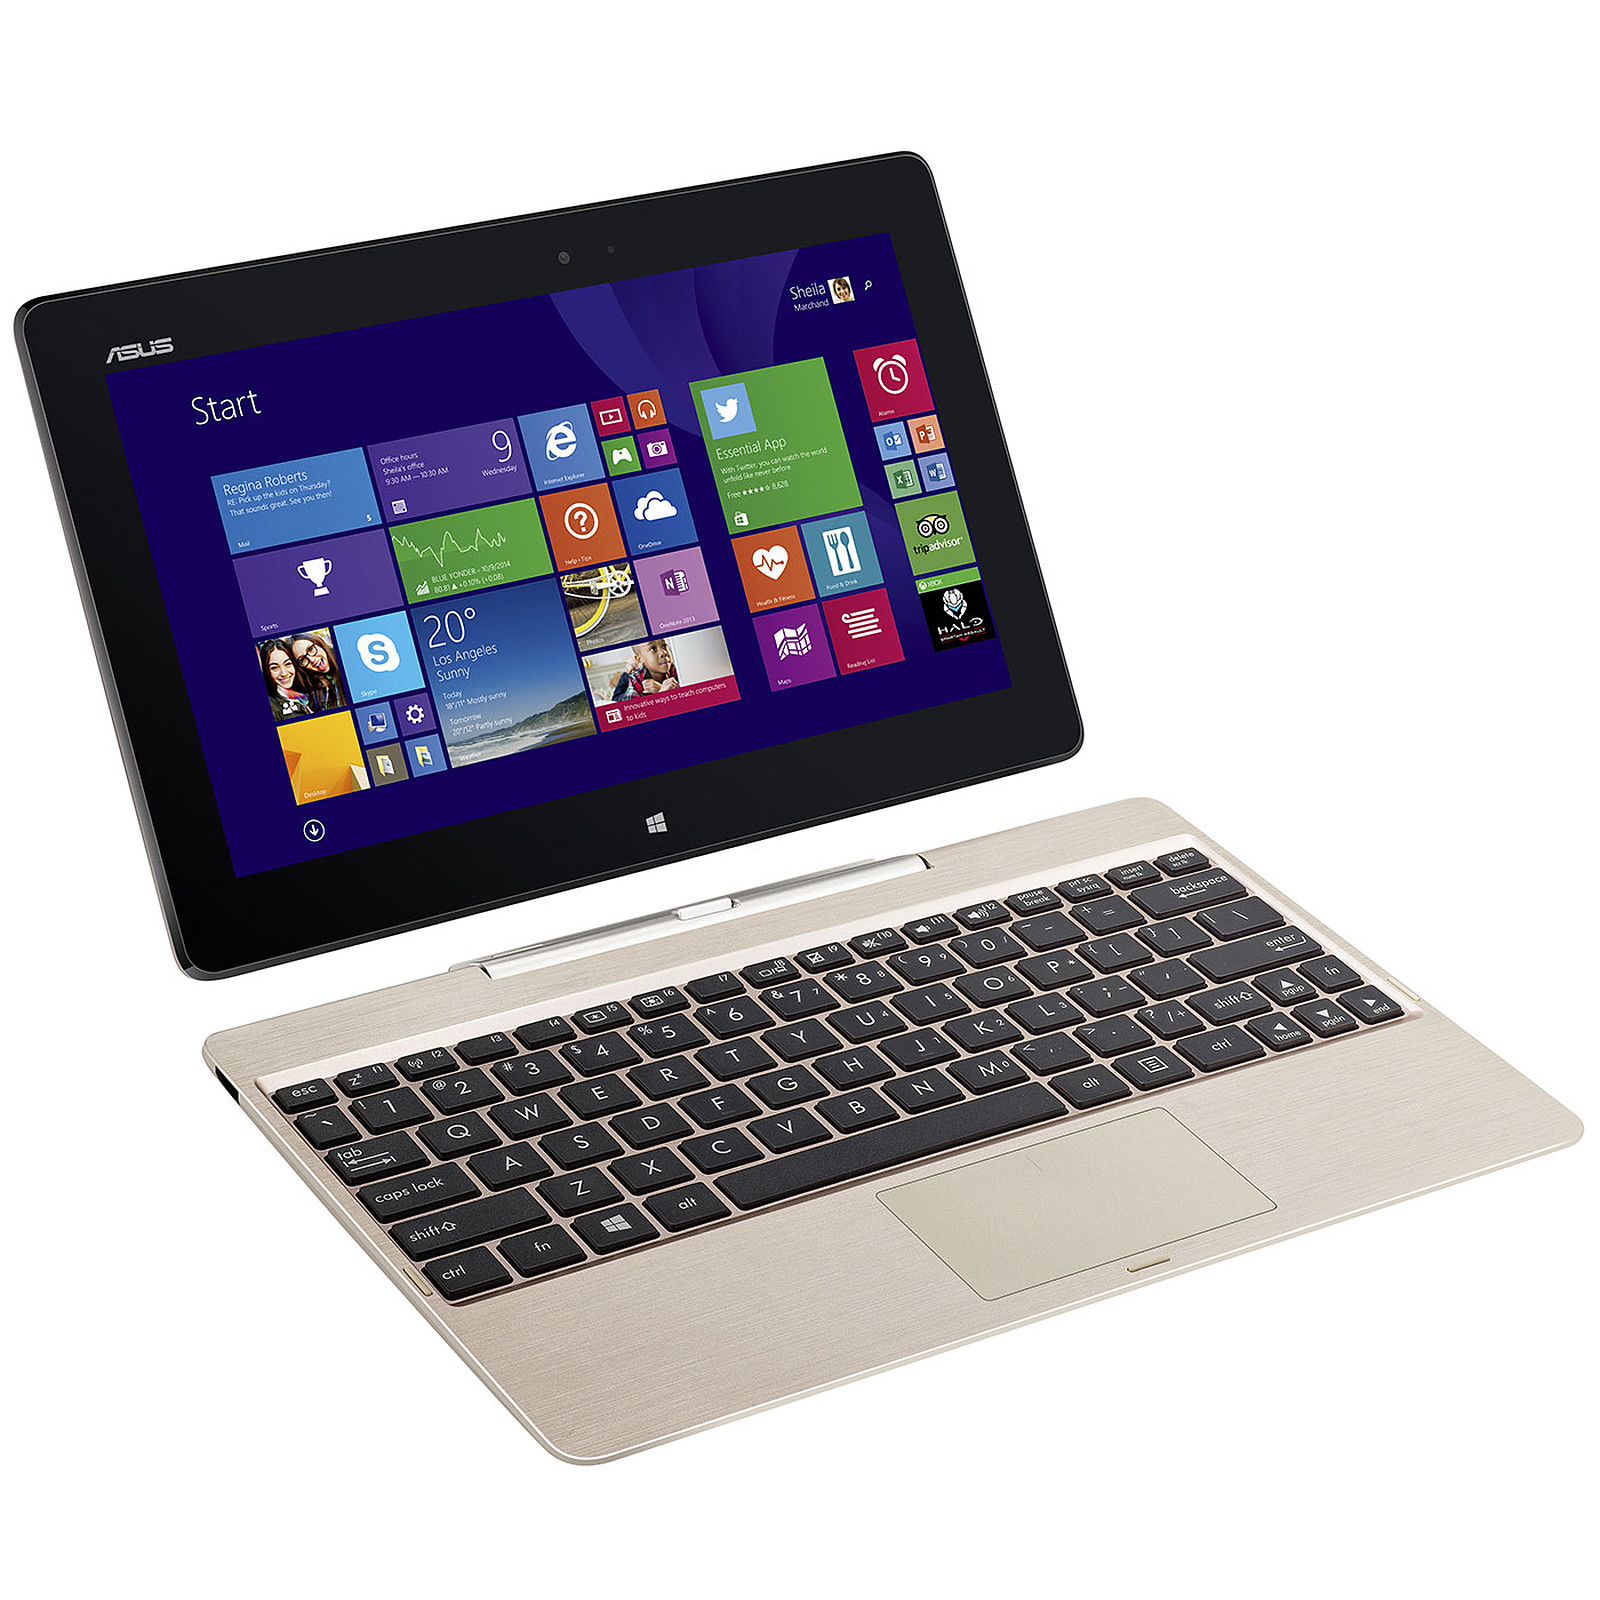 asus transformer book t100tam bing dk046b avec clavier tablette tactile asus sur. Black Bedroom Furniture Sets. Home Design Ideas